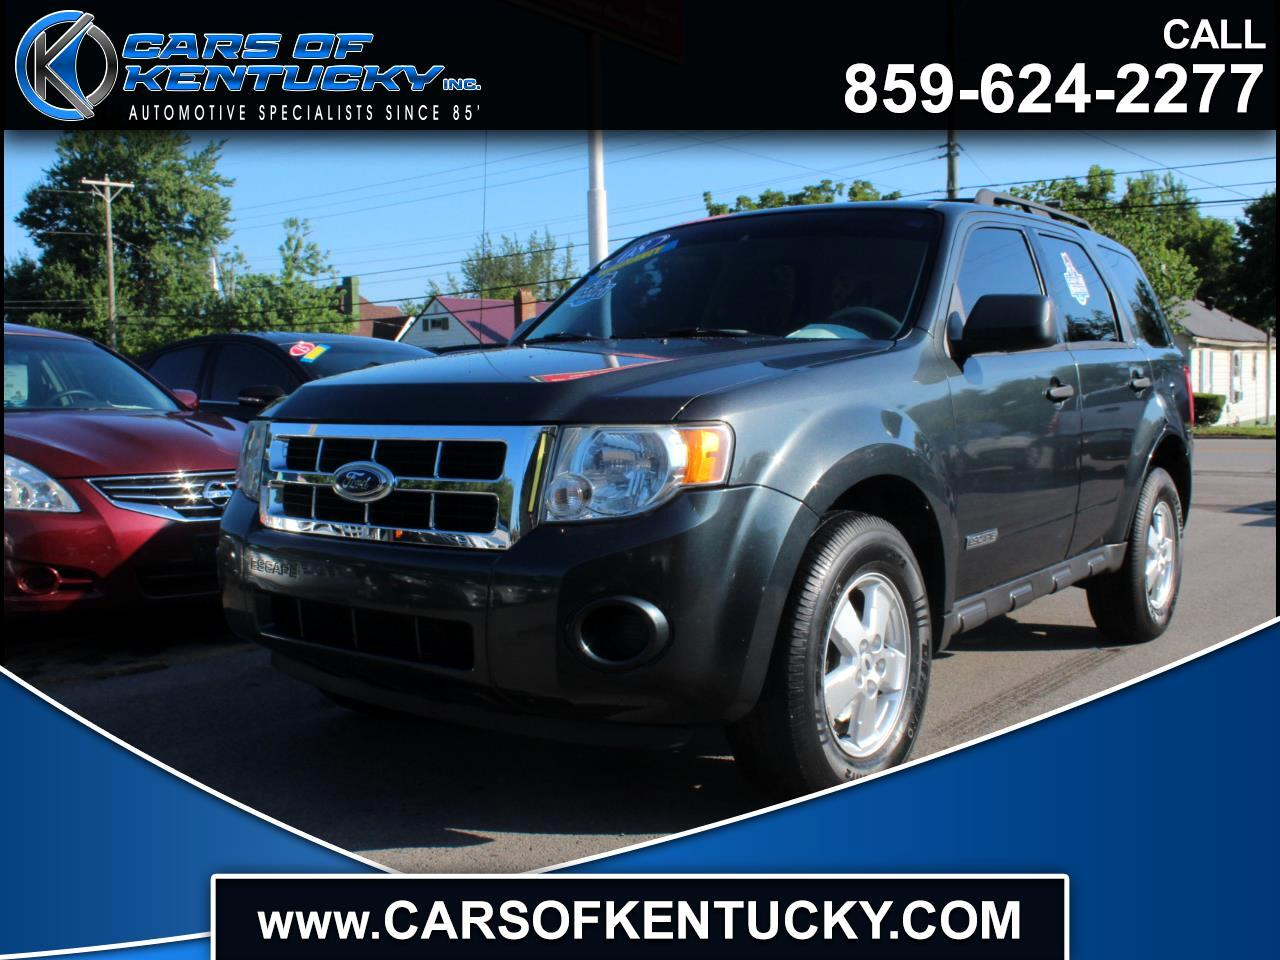 2008 Ford Escape XLS 2WD Manual